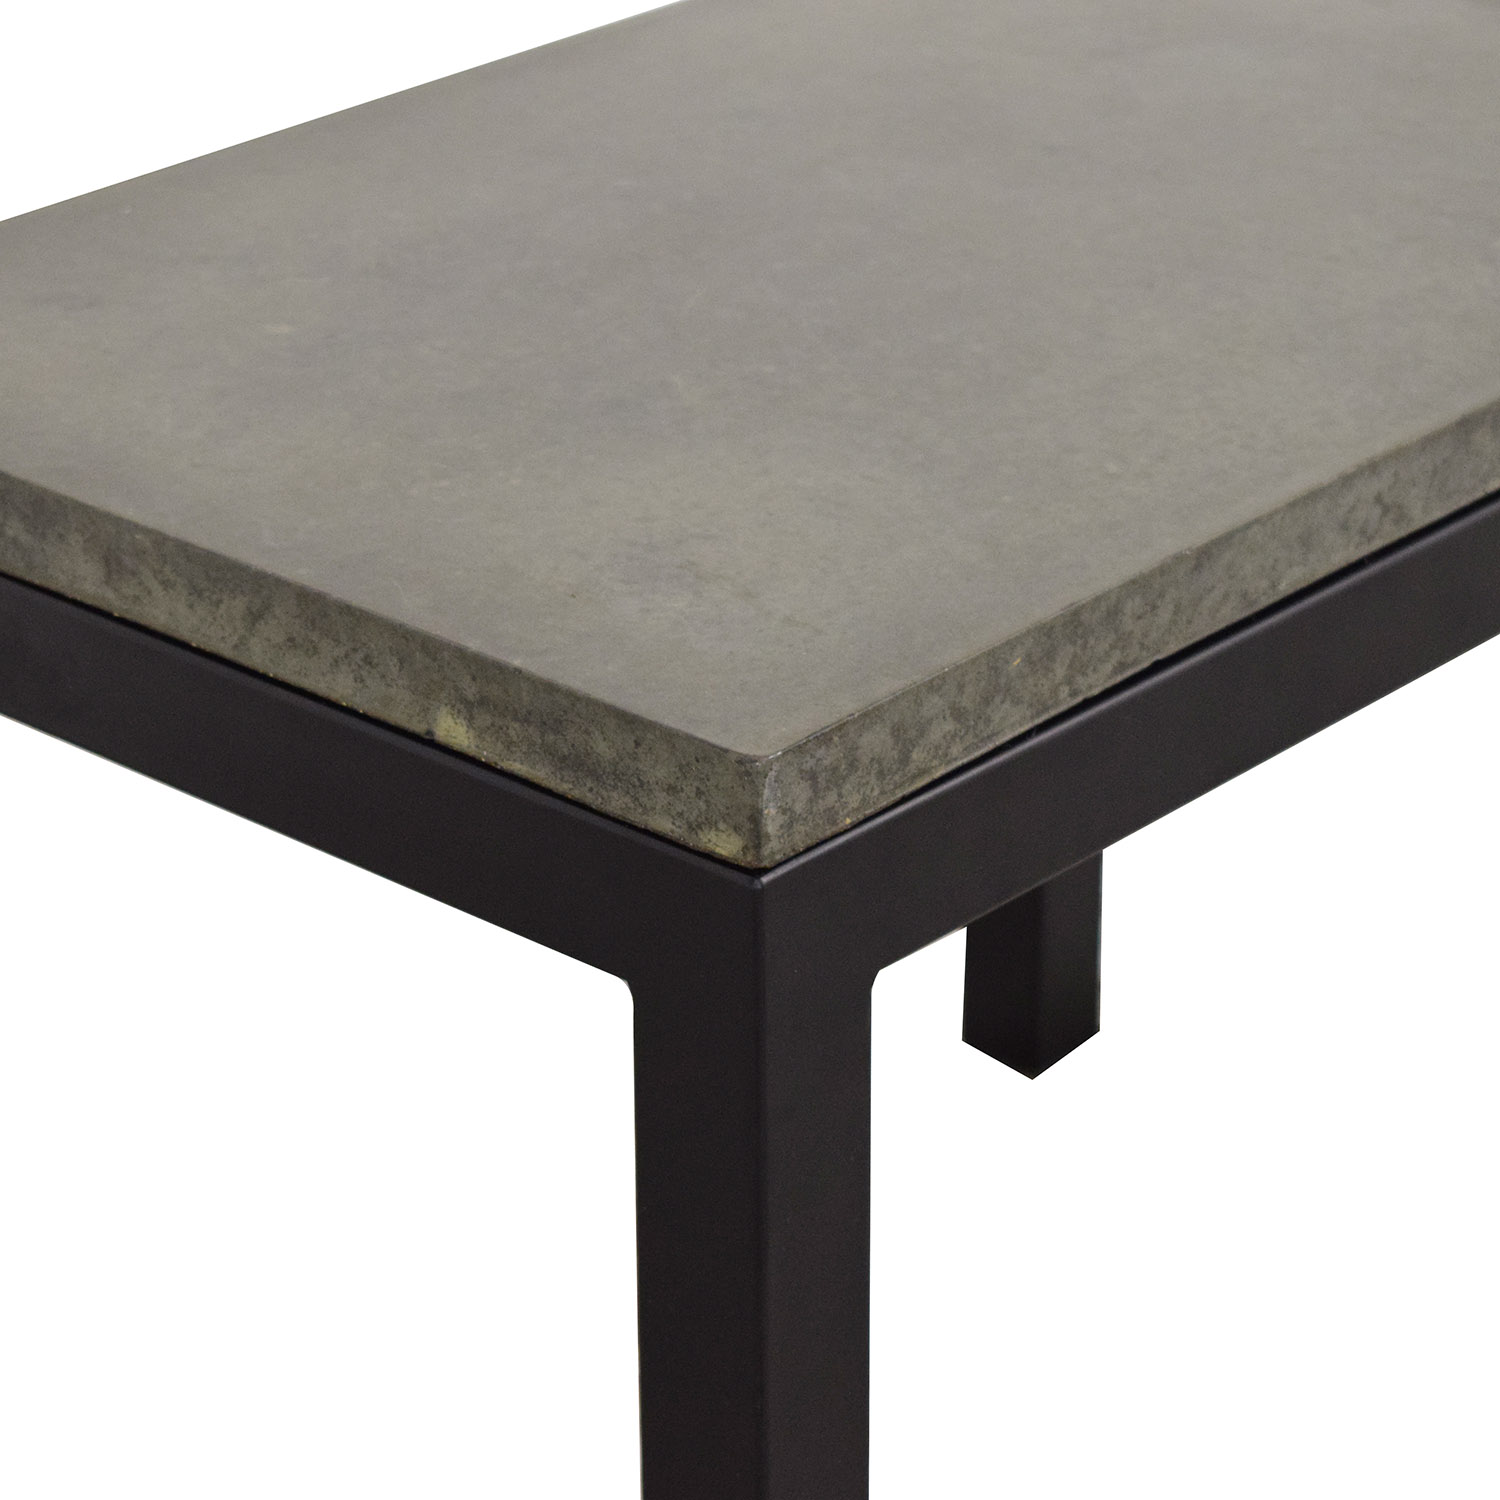 Room & Board Room & Board Parsons Concrete End Table used